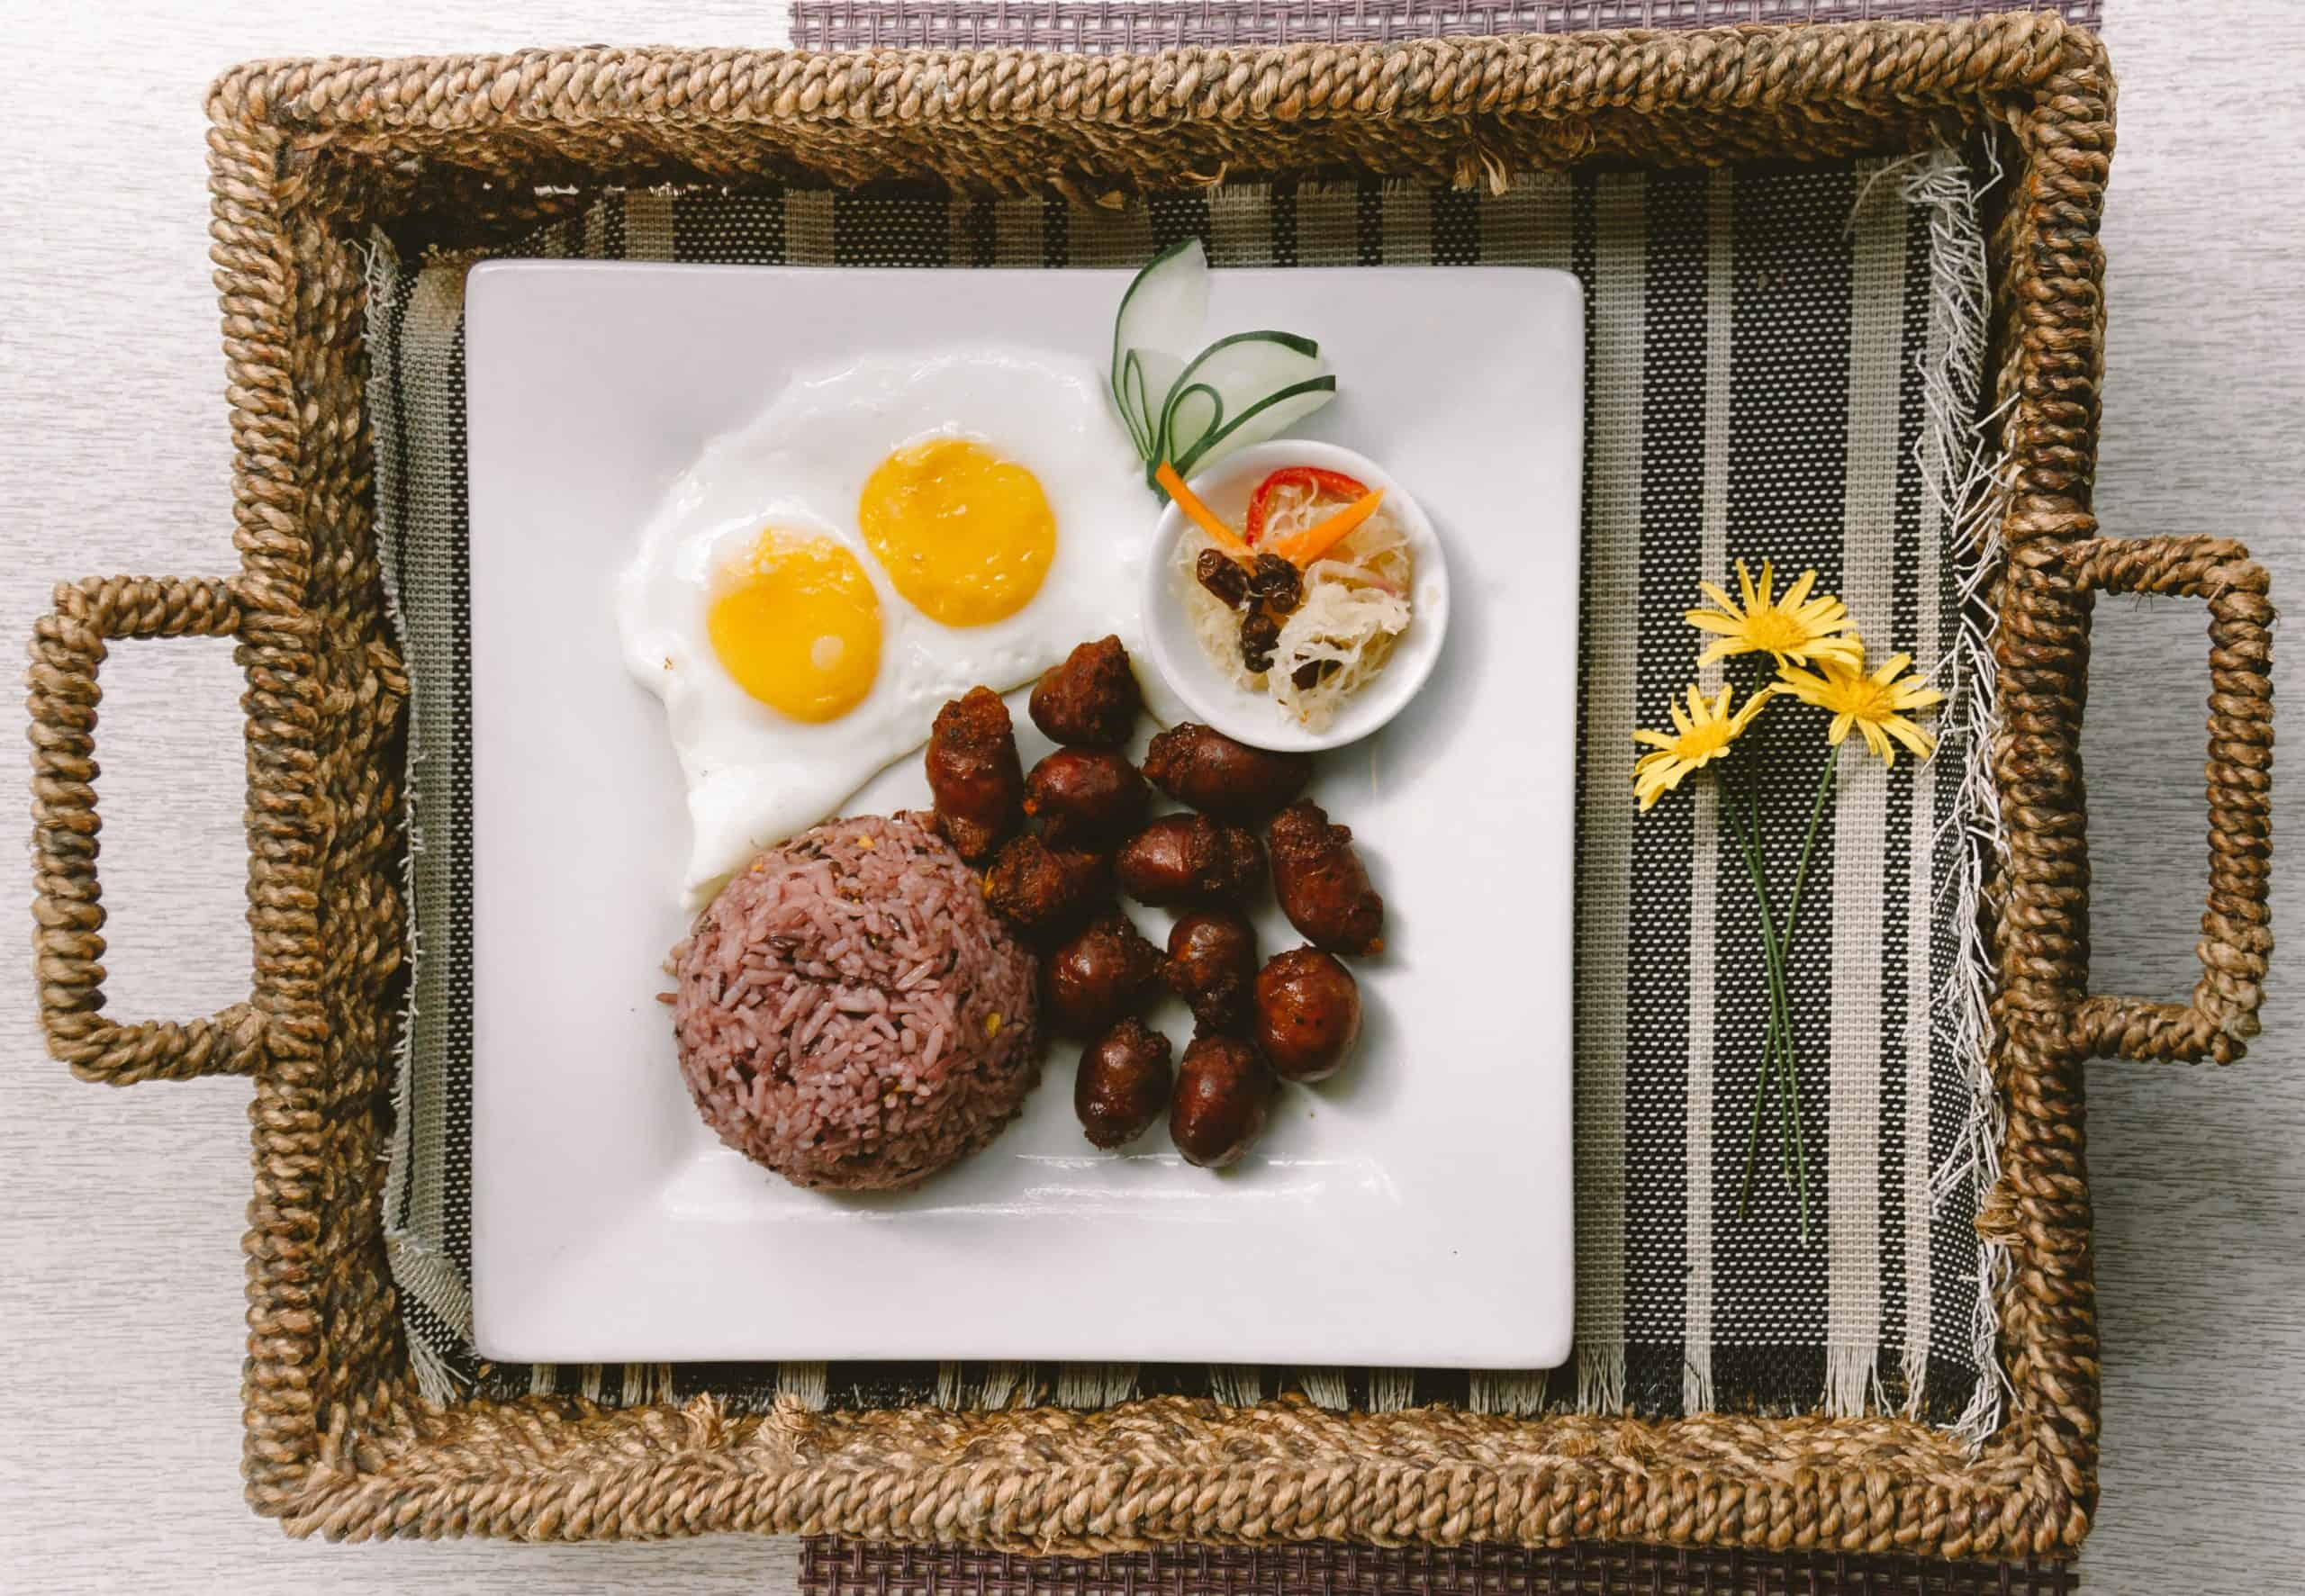 Some Filipino Party Food Favorites